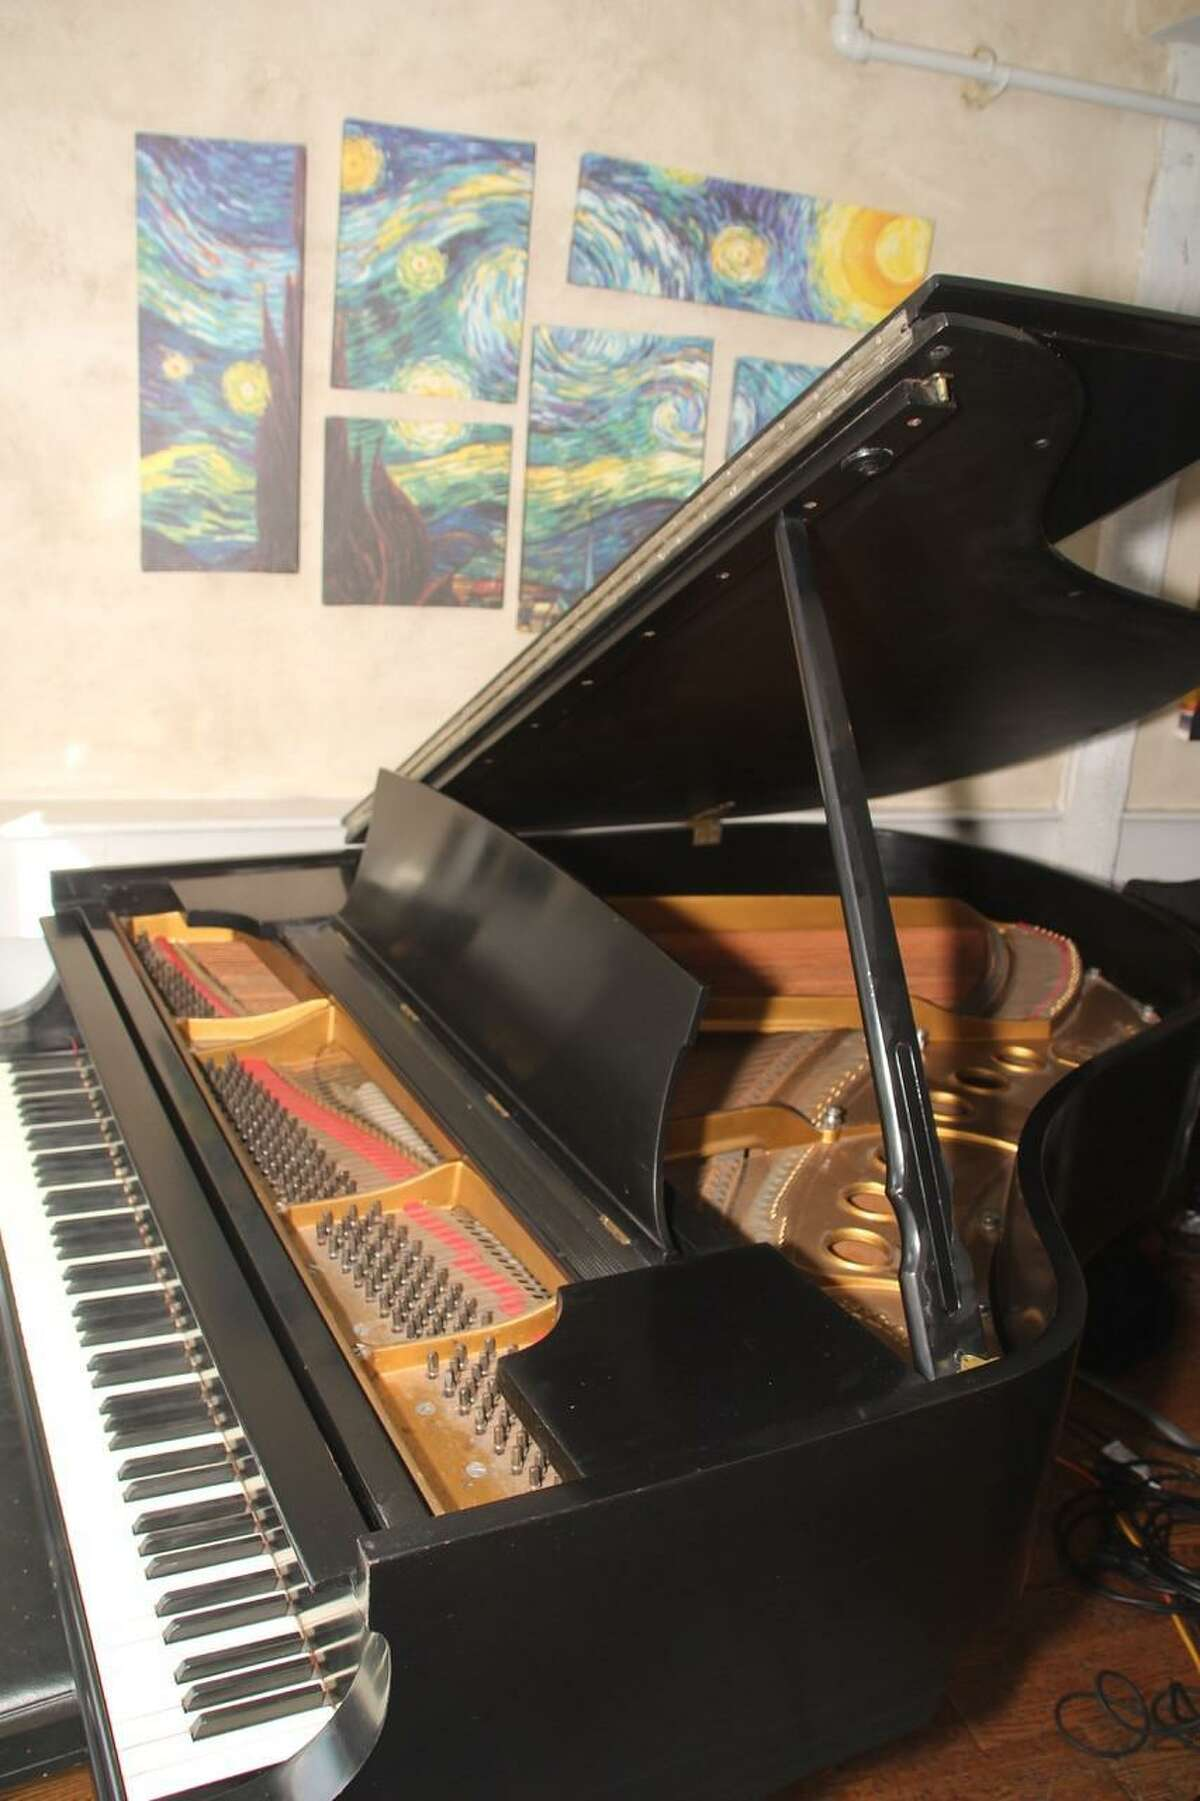 This 1937 Steinway model M was at the Village Gate in New York City until the club closed in 1988. Now the piano is at the Pearl restaurant in Westport, and is owned by the Jazz Society of Fairfield County.